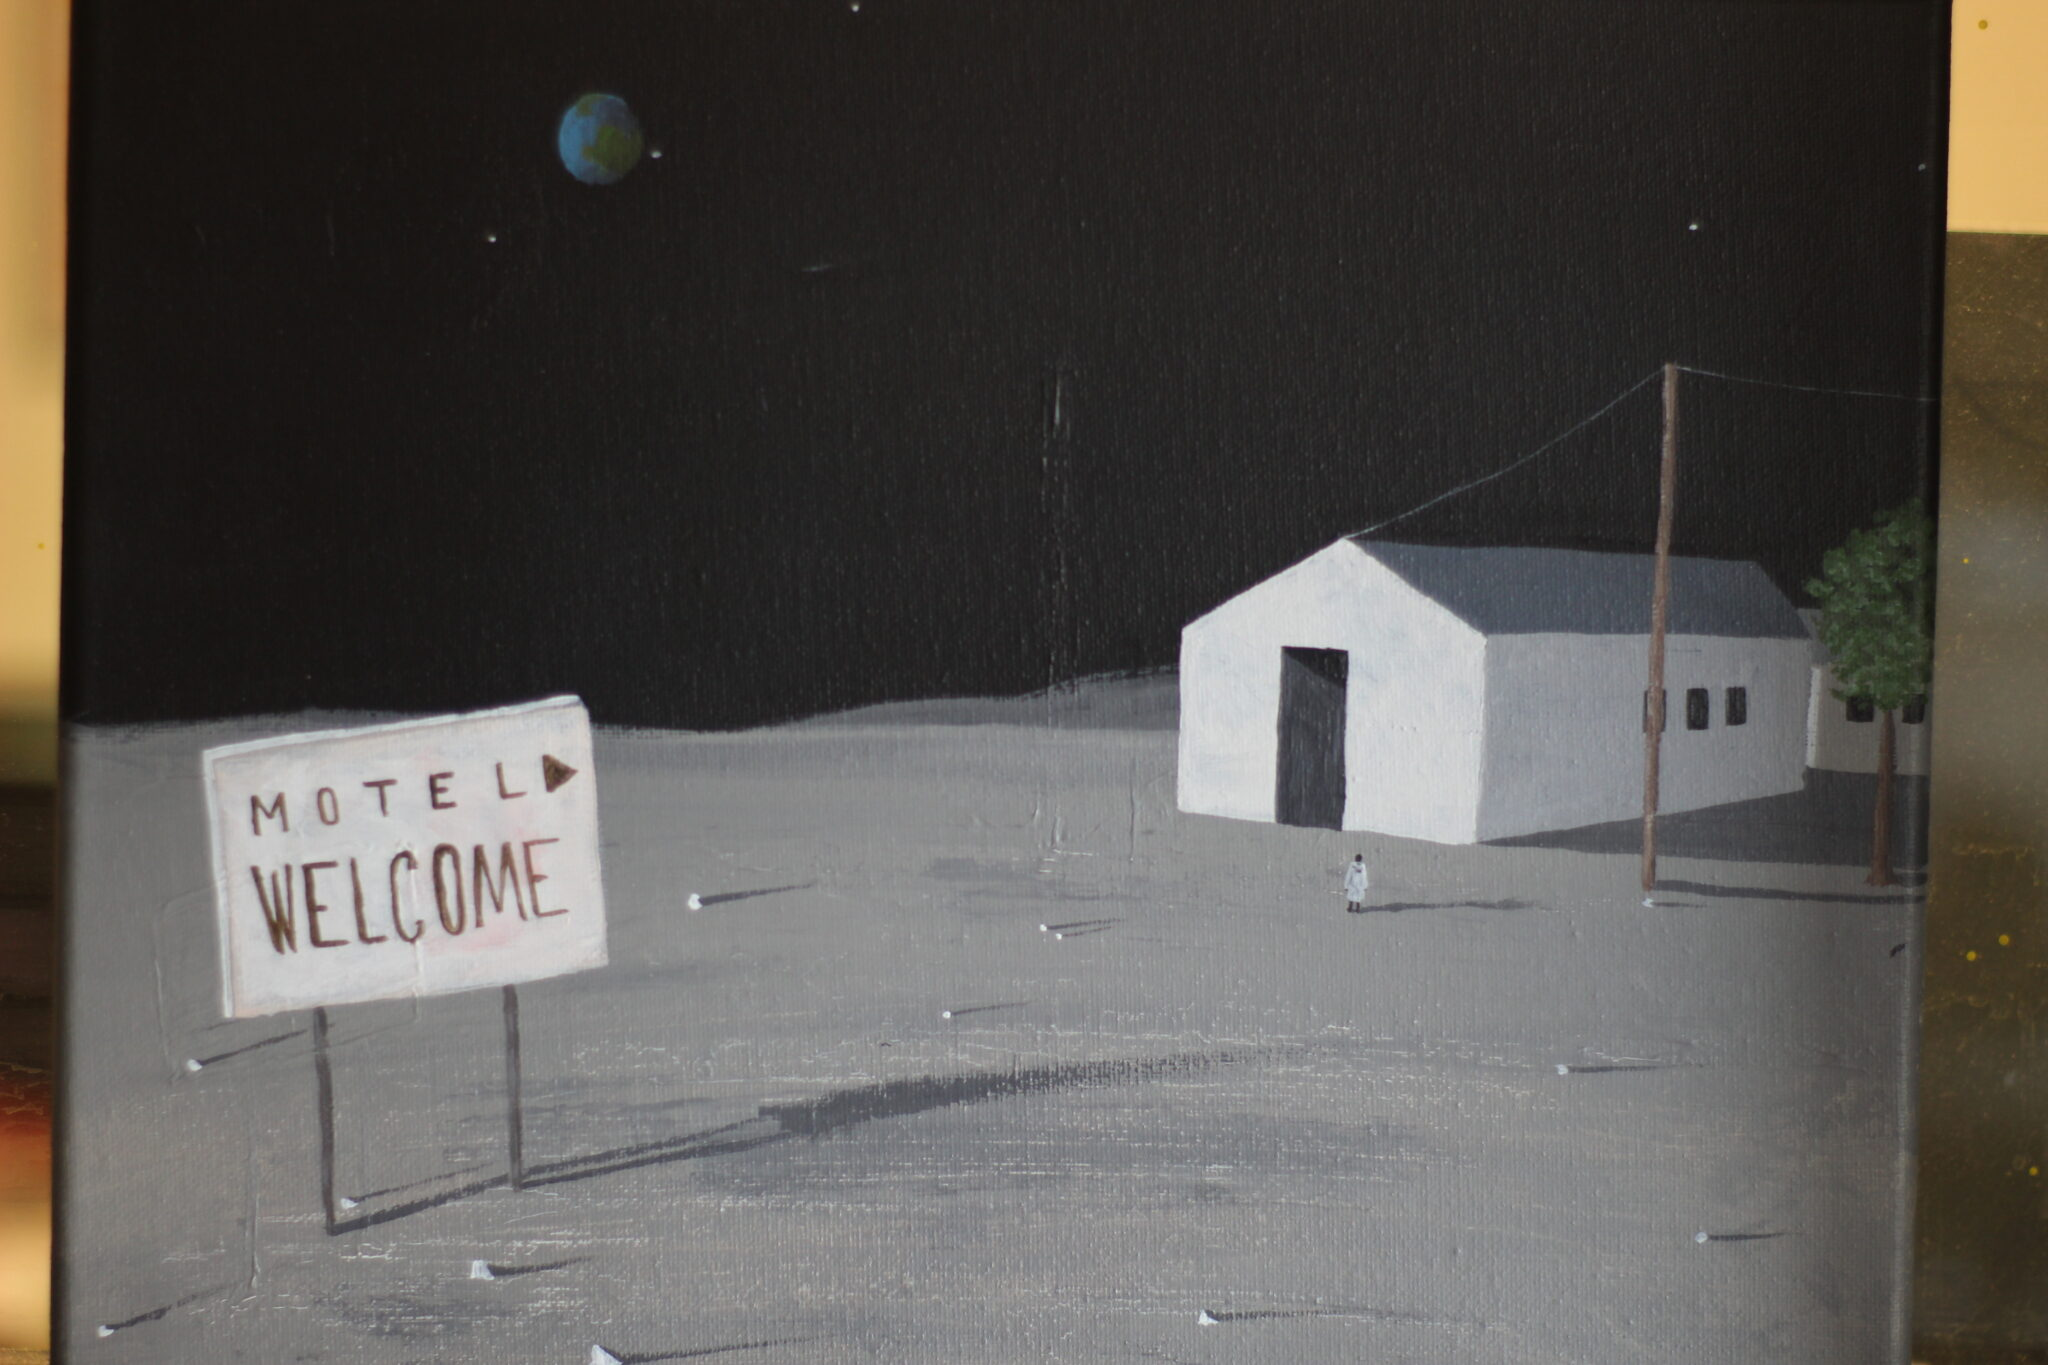 motel welcome painting